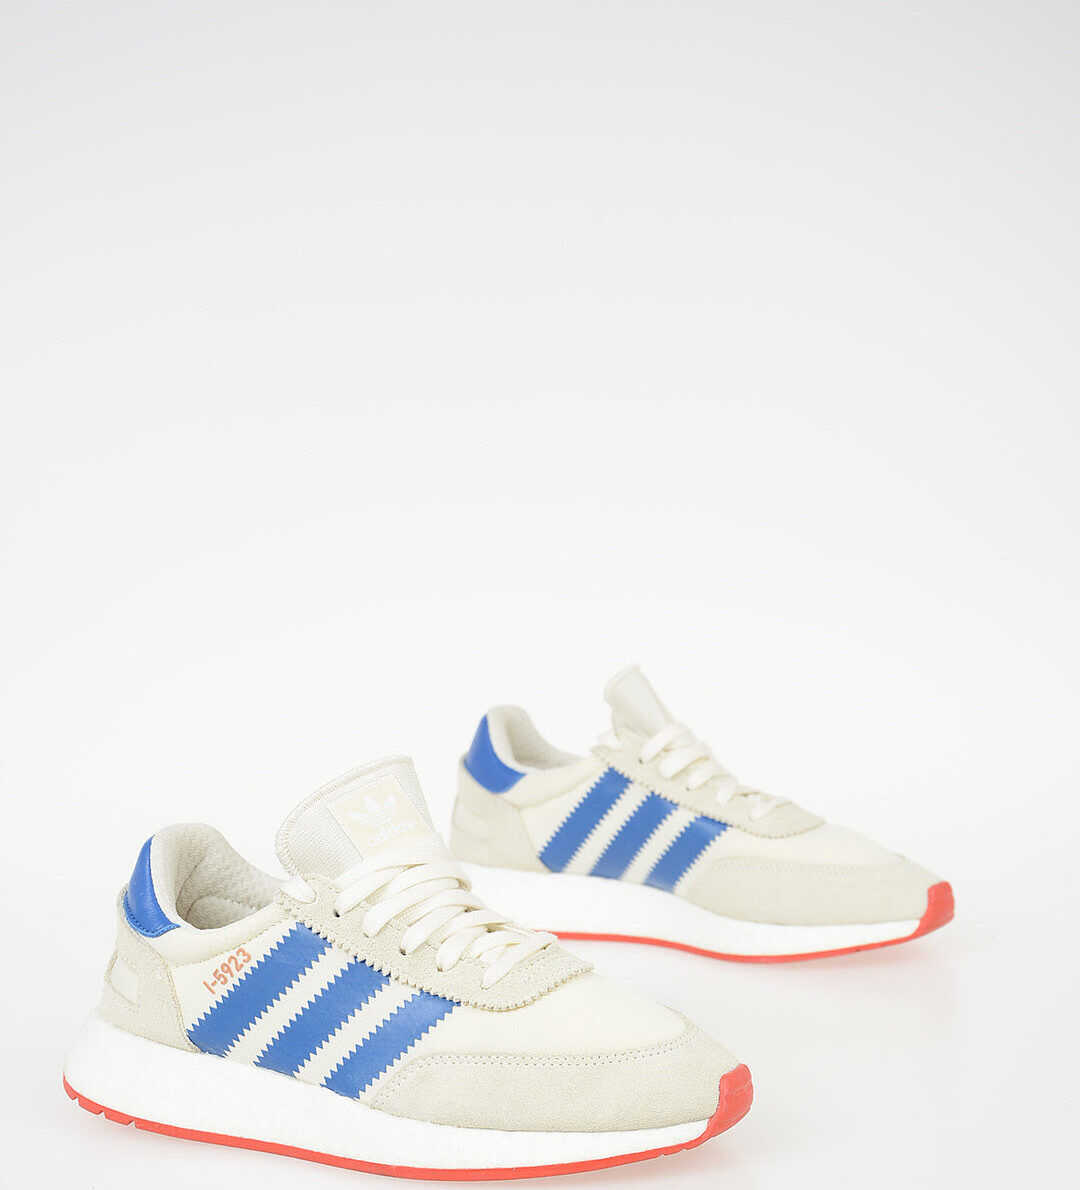 adidas Fabric Sneakers N/A